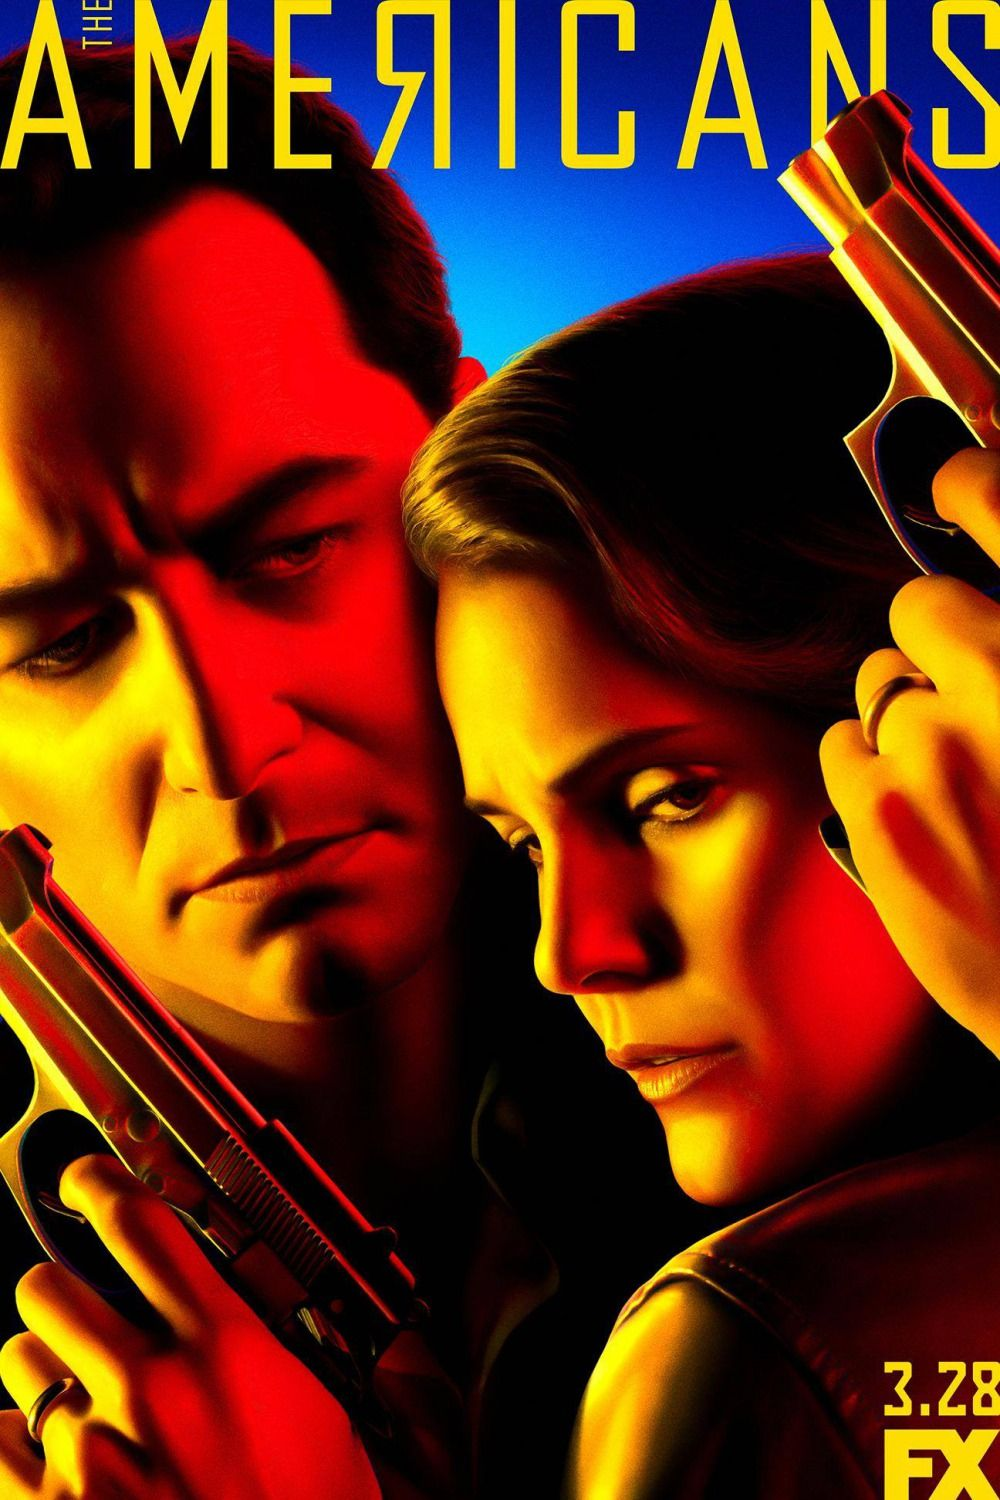 Return to the main poster page for The Americans (#16 of 16